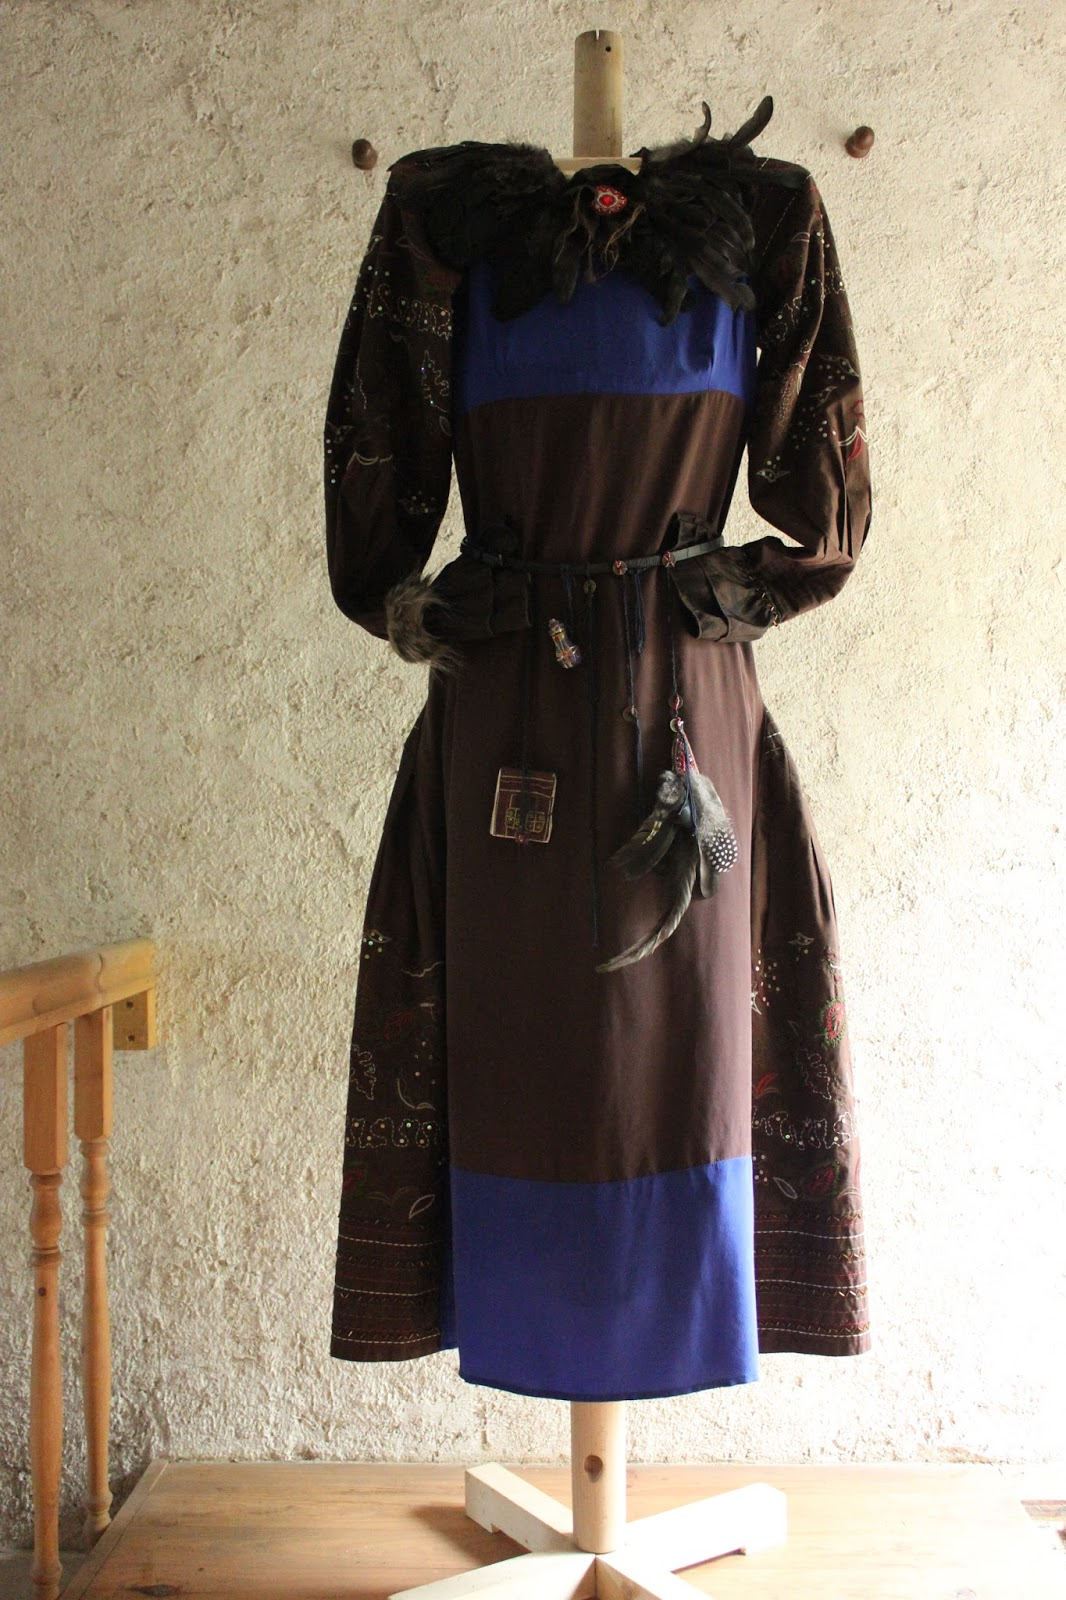 Home-made pallet wood dress form